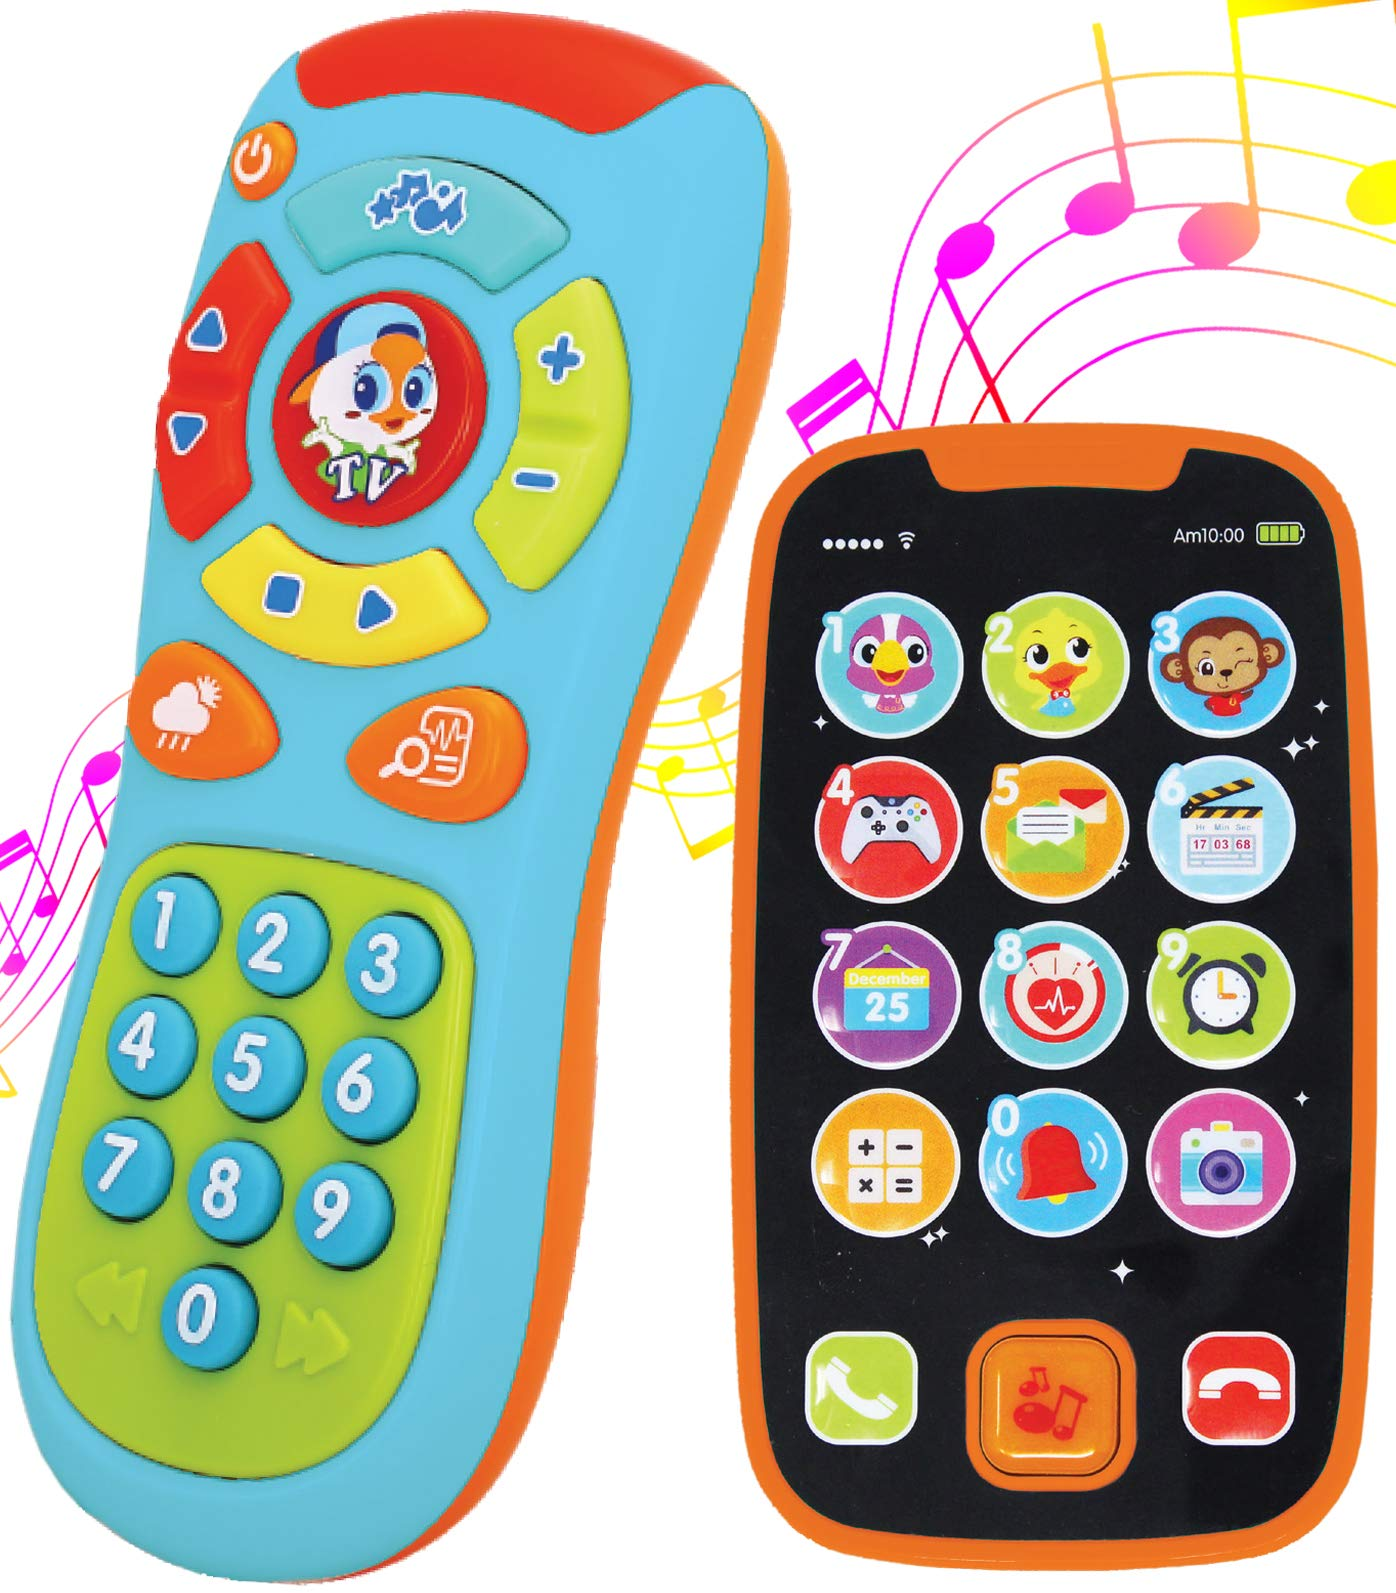 SYNCFUN Learning Remote and Phone Bundle with Music, Fun, Smartphone Toys by SYNCFUN